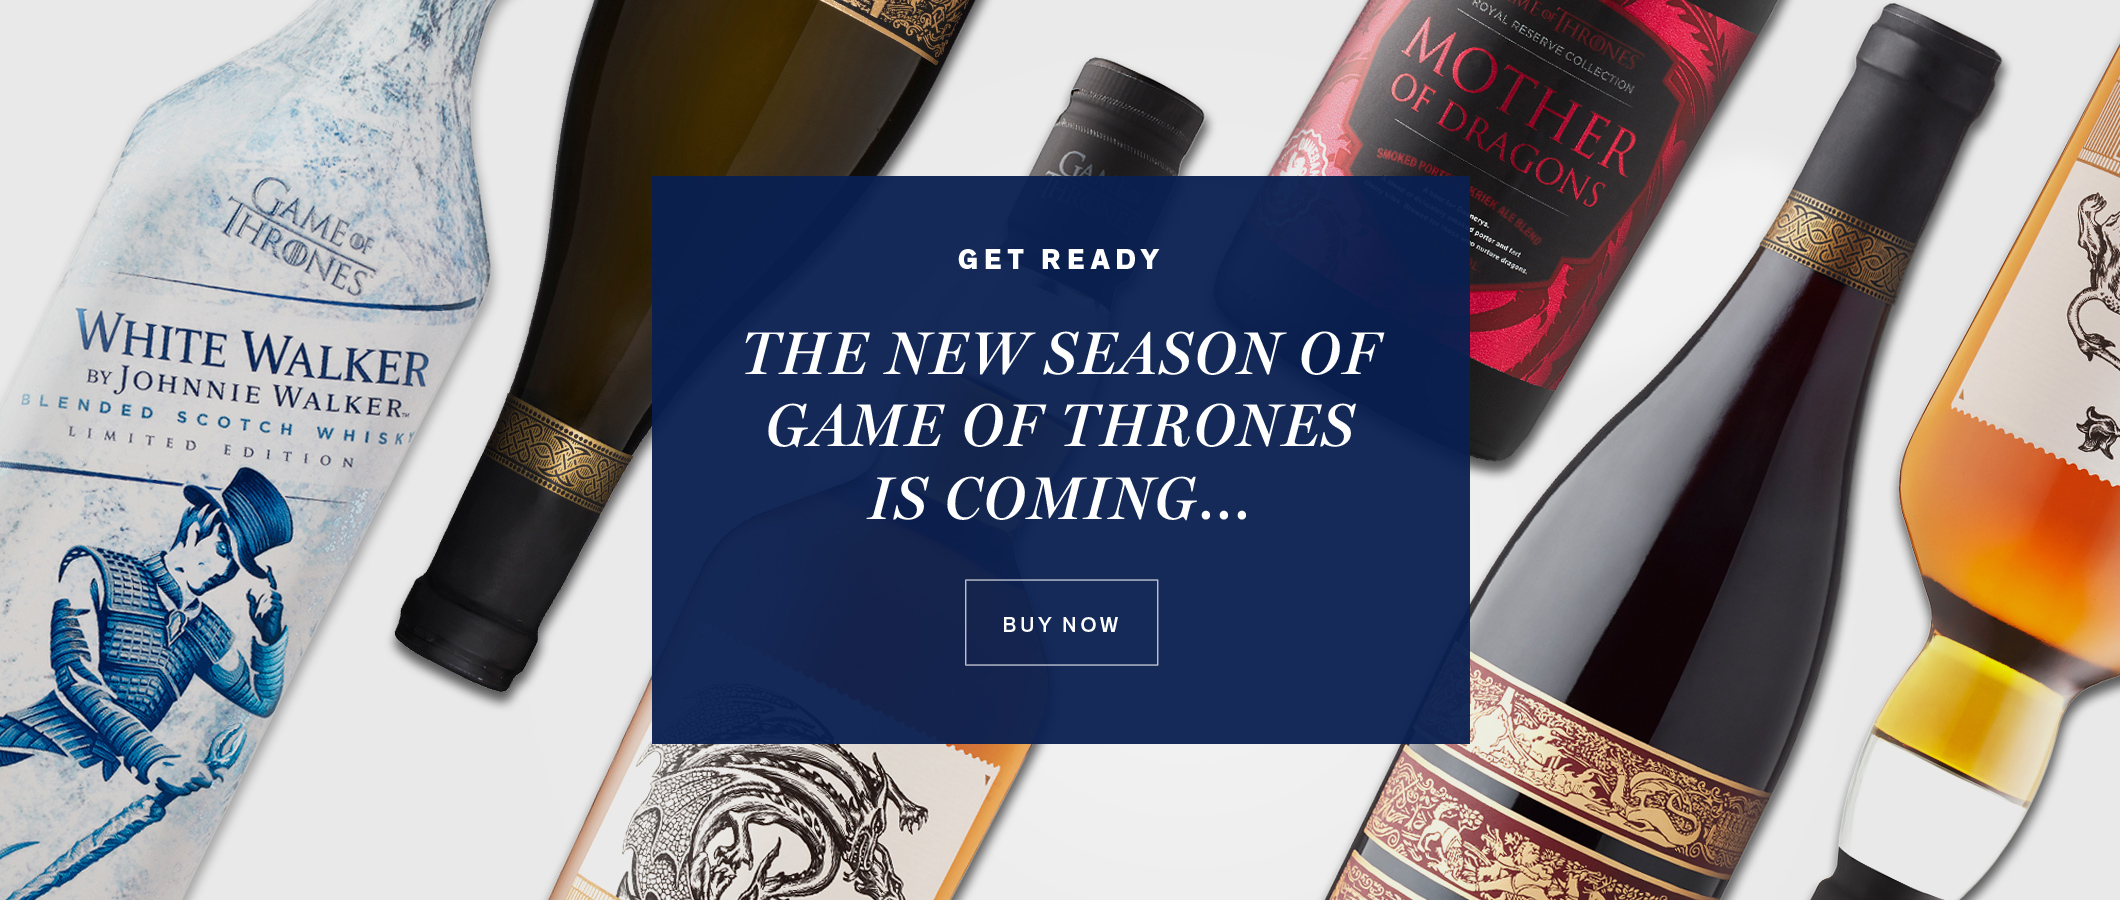 Get Ready.  The New Season of Game of Thrones Is Coming...